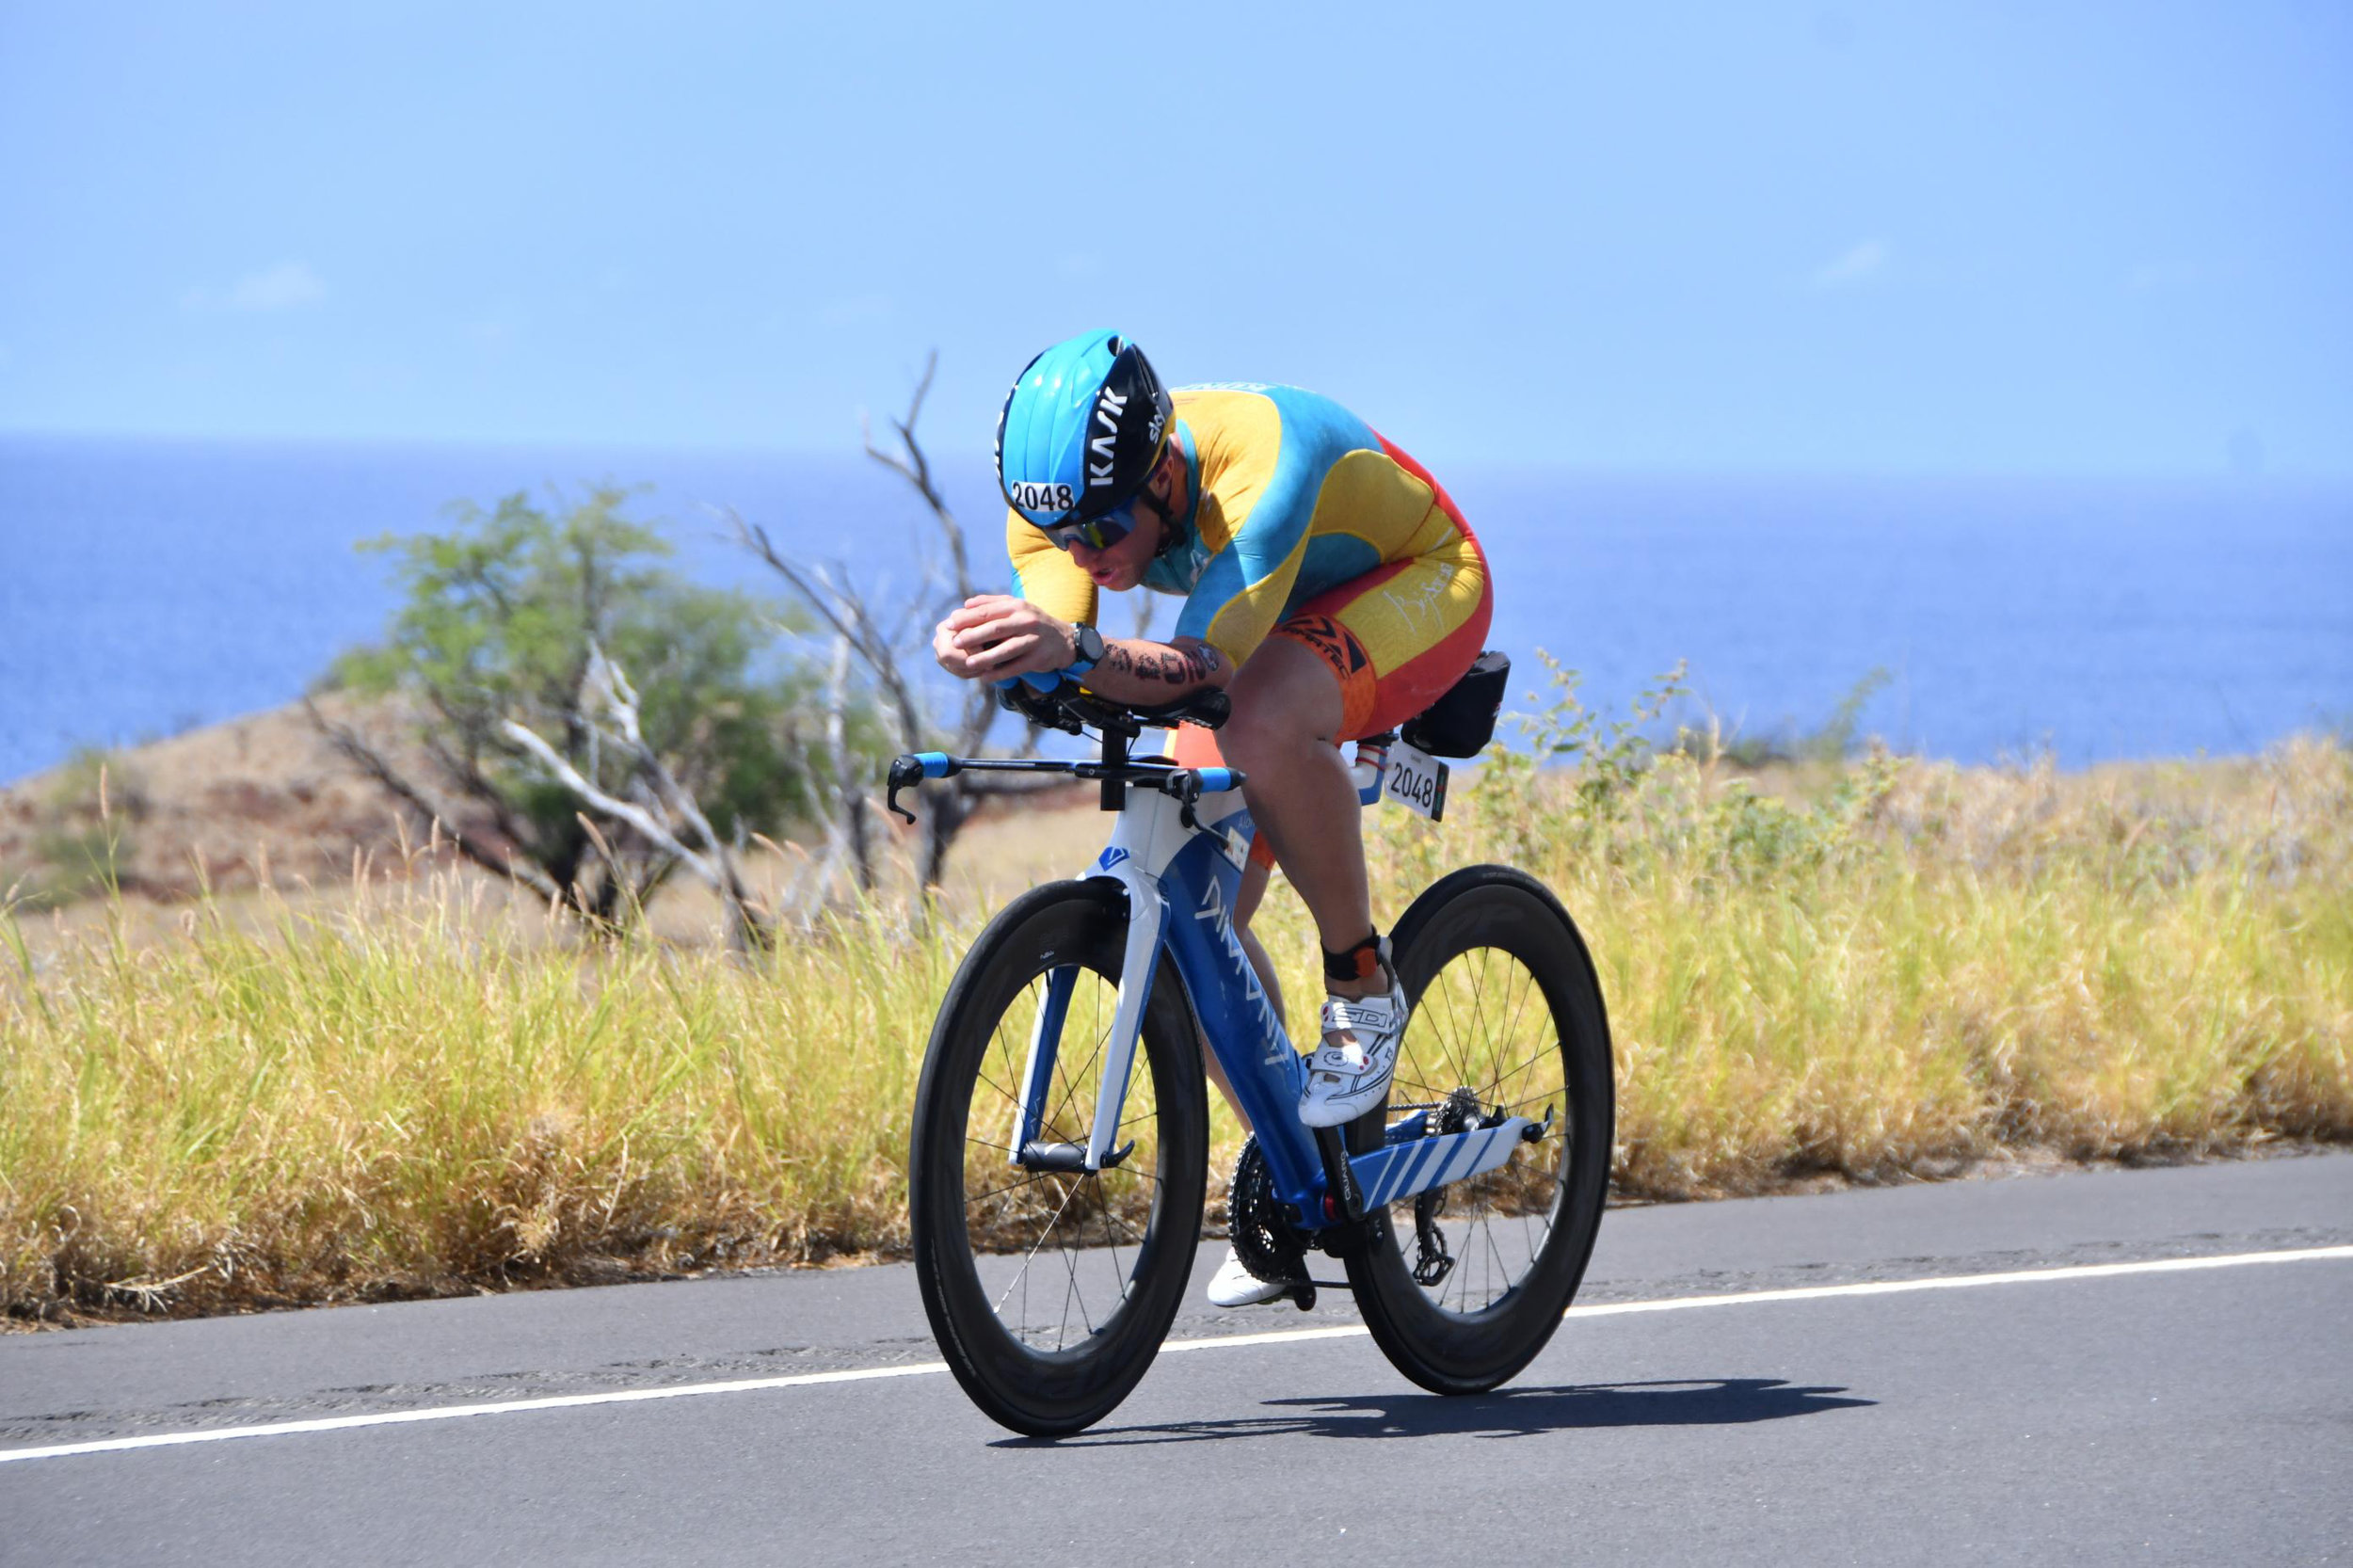 Coach_Terry_Wilson_Pursuit_of_The_Perfect_Race_IRONMAN_World_Championship_Kona_Shane_Peed_7.JPG